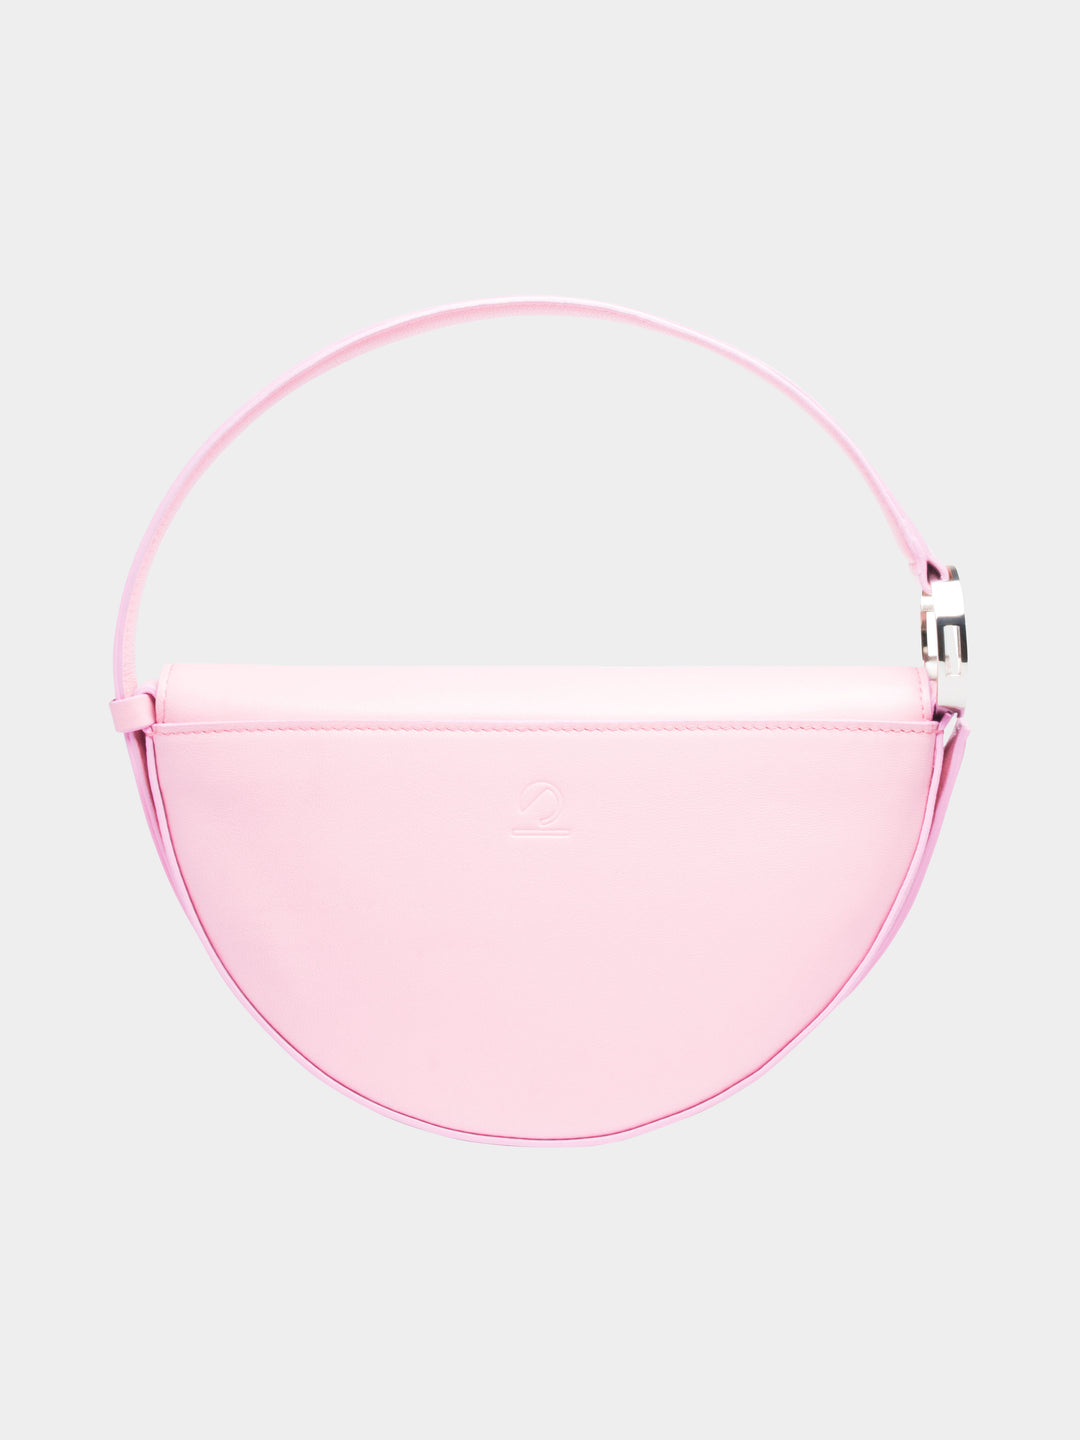 Dooz Libra Céleste leather handbag in color Blush